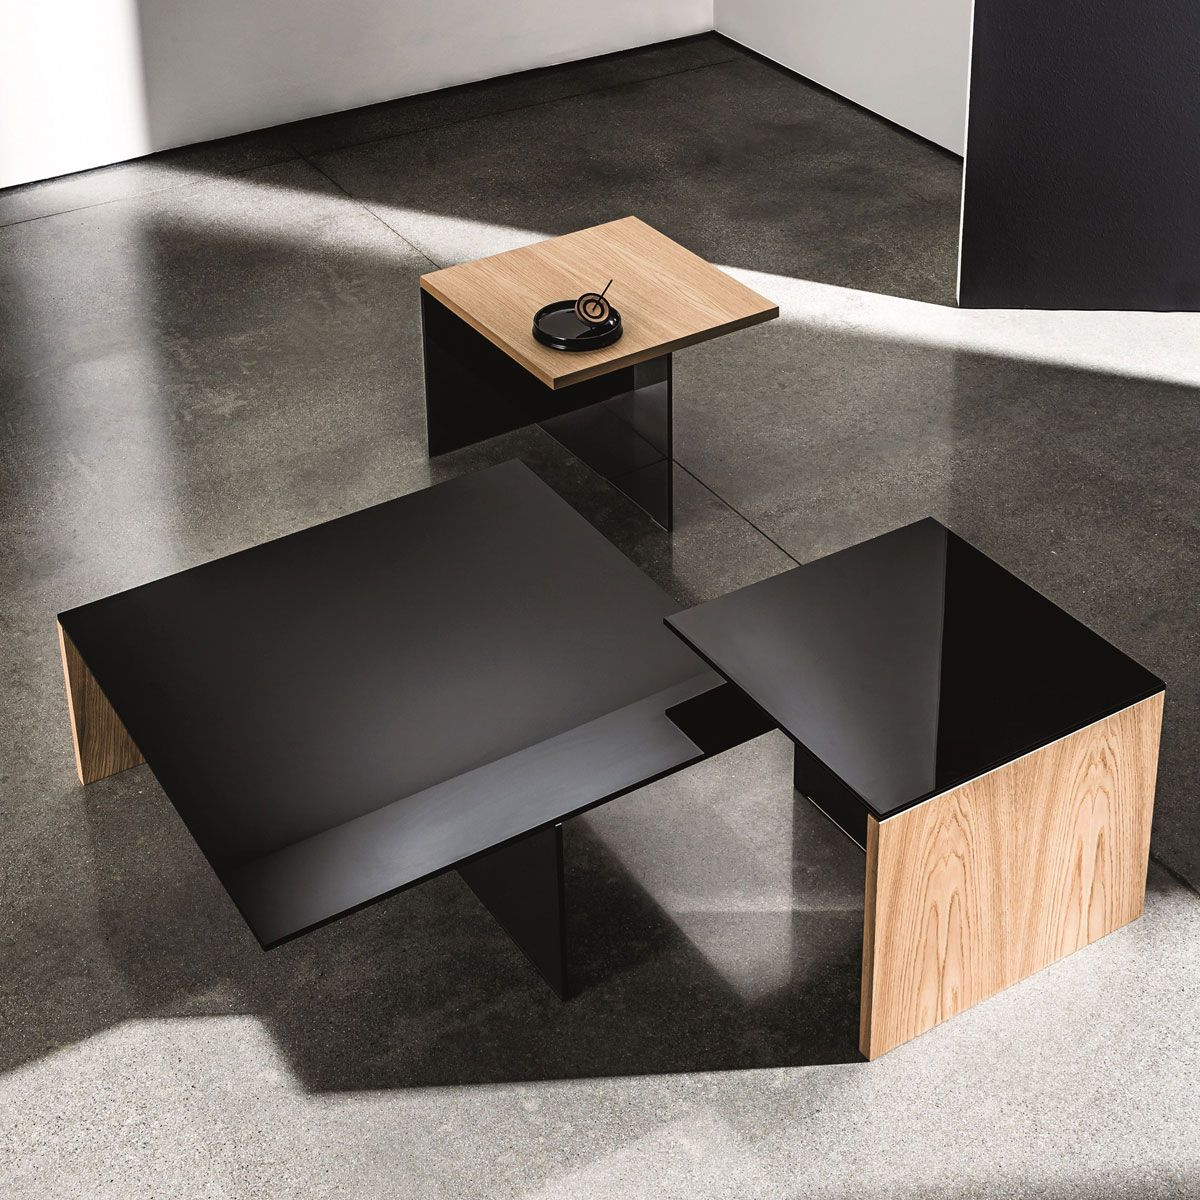 Regolo Square Glass And Wood Coffee Table Klarity Glass Furniture Coffee Table Wood Coffee Table Square Modern Square Coffee Table [ 1200 x 1200 Pixel ]